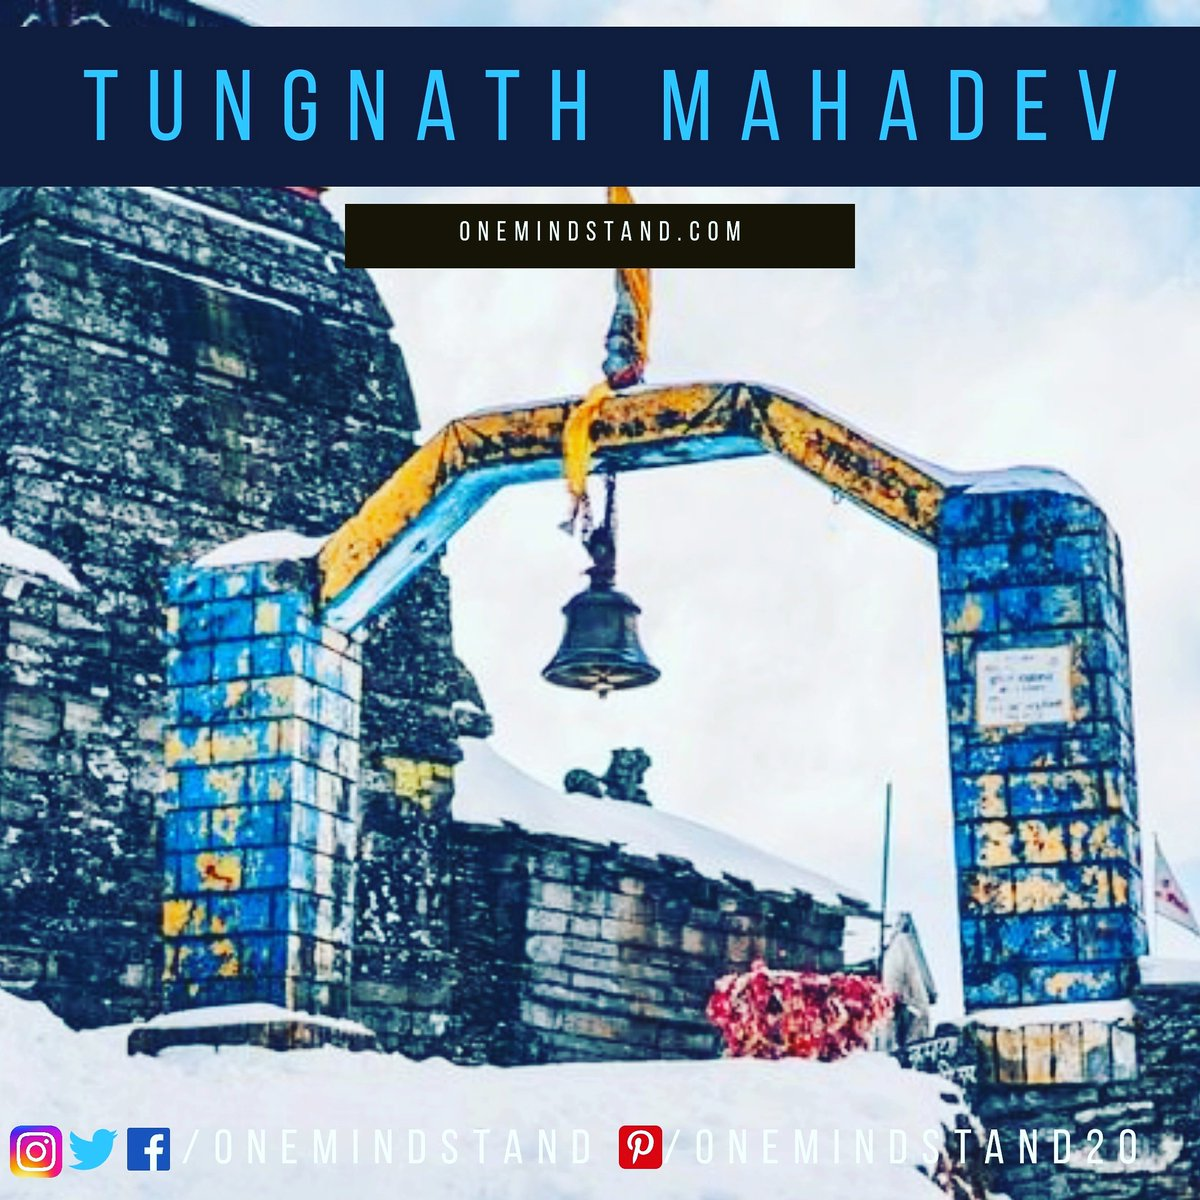 Trek to Tungnath Mahadev  https://t.co/Luswse8M3t  #tungnath #mahadev #bholenath #roadtrip #uttrakhand_dairies #uttrakhand #bestplacetovisit #trekking #snowfall #bestroadtrips #views #nature #mountainlife #mountains #onemindstand #photography #mytravelgram #traveler https://t.co/aWH6rjDimn